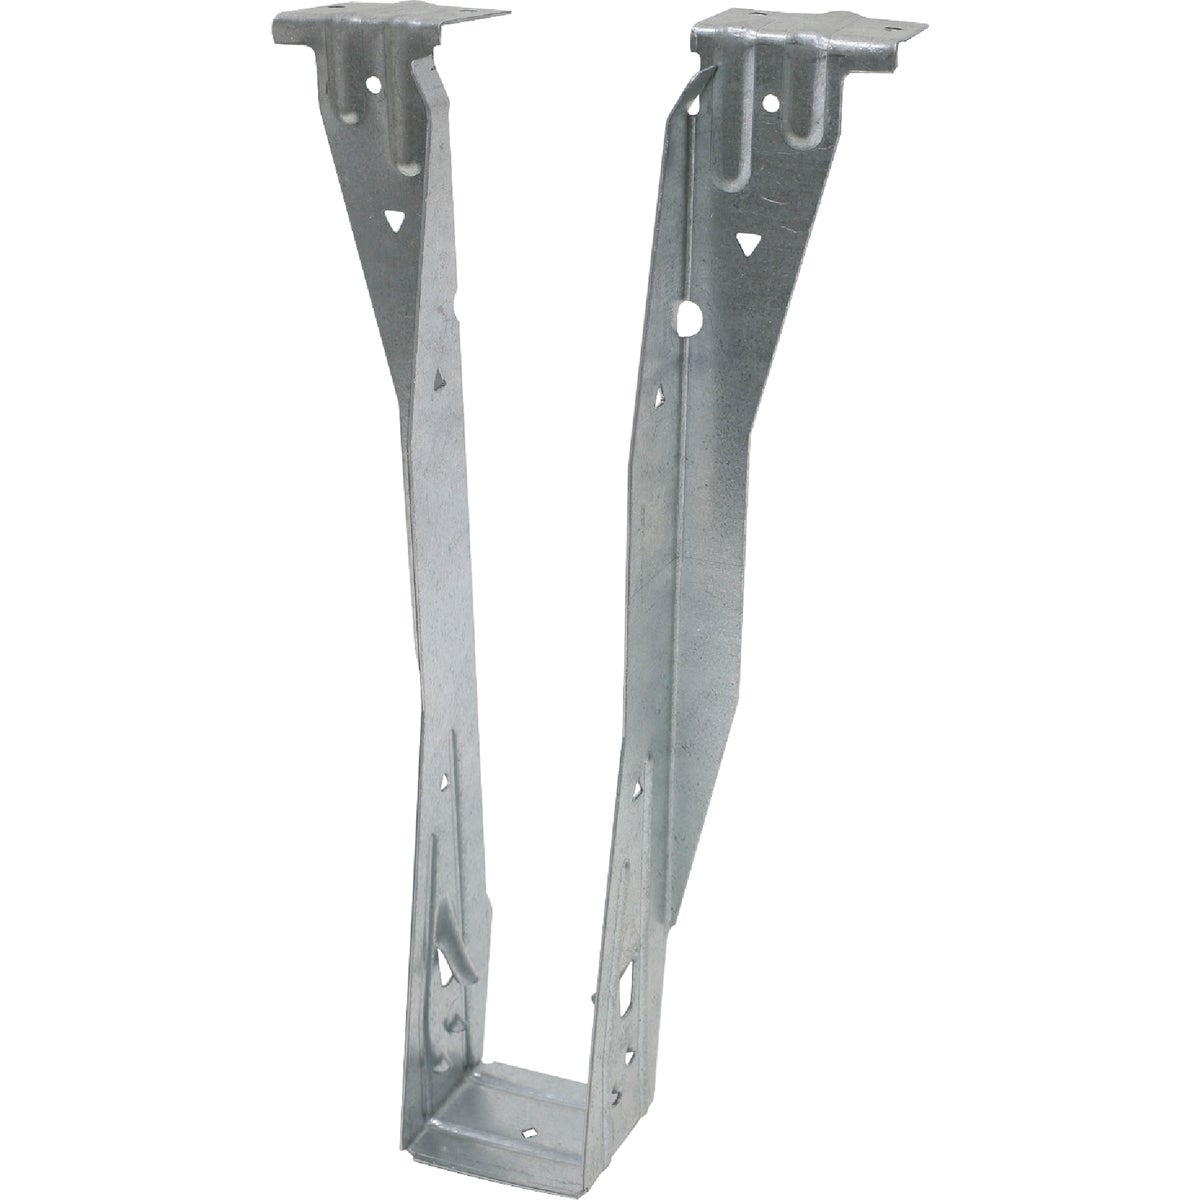 TOP FLANGE HANGER